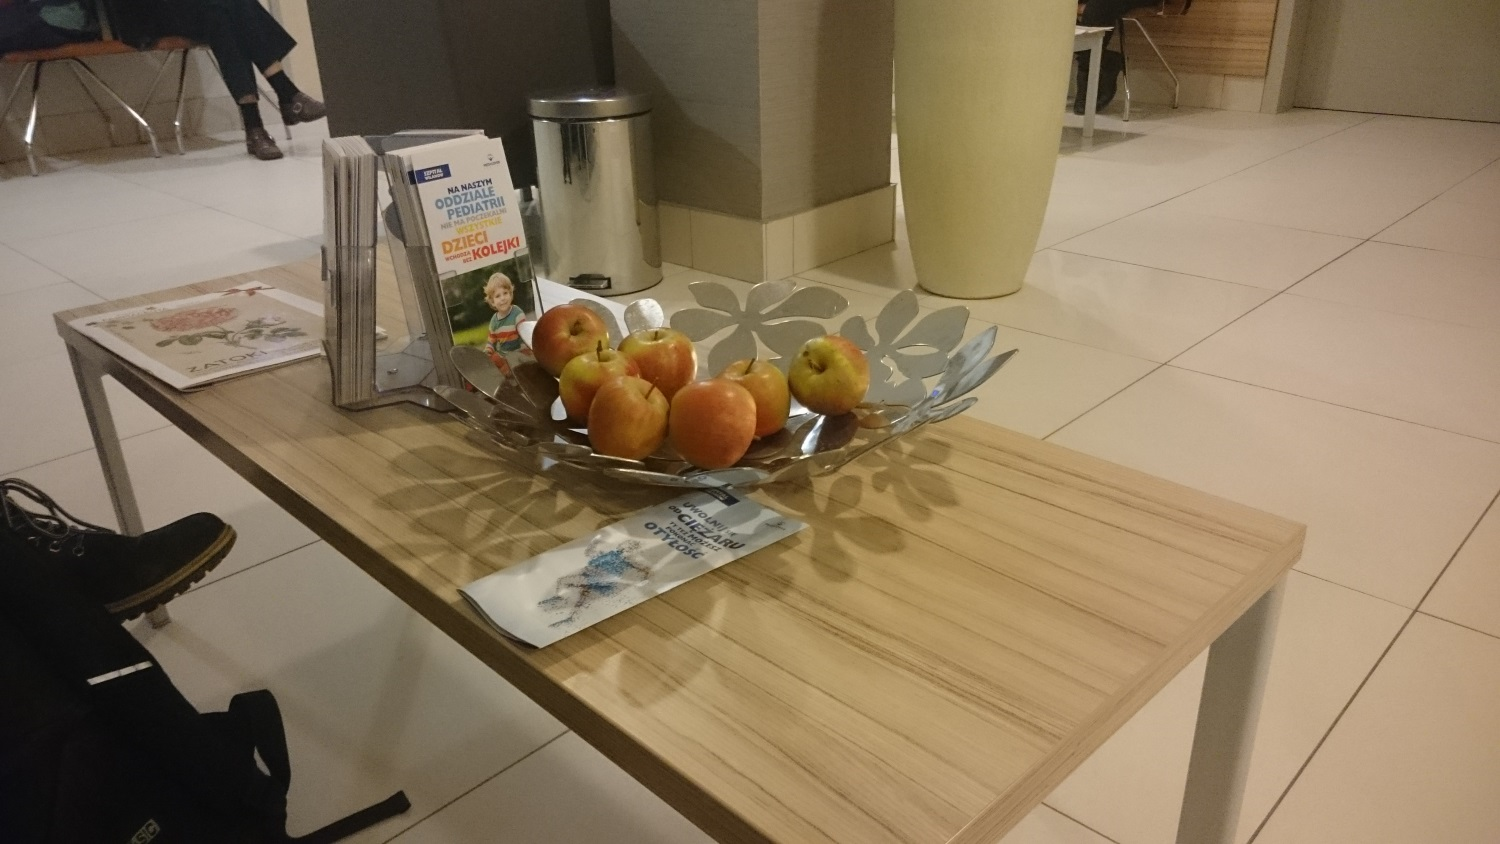 While I was waiting for an x ray this is the table that was just in front of me. I thought it pretty nice that they offered apples to snack on. NO CHARGE! People could just take and eat an apple as they wanted. Yes, apples are plenteous here!